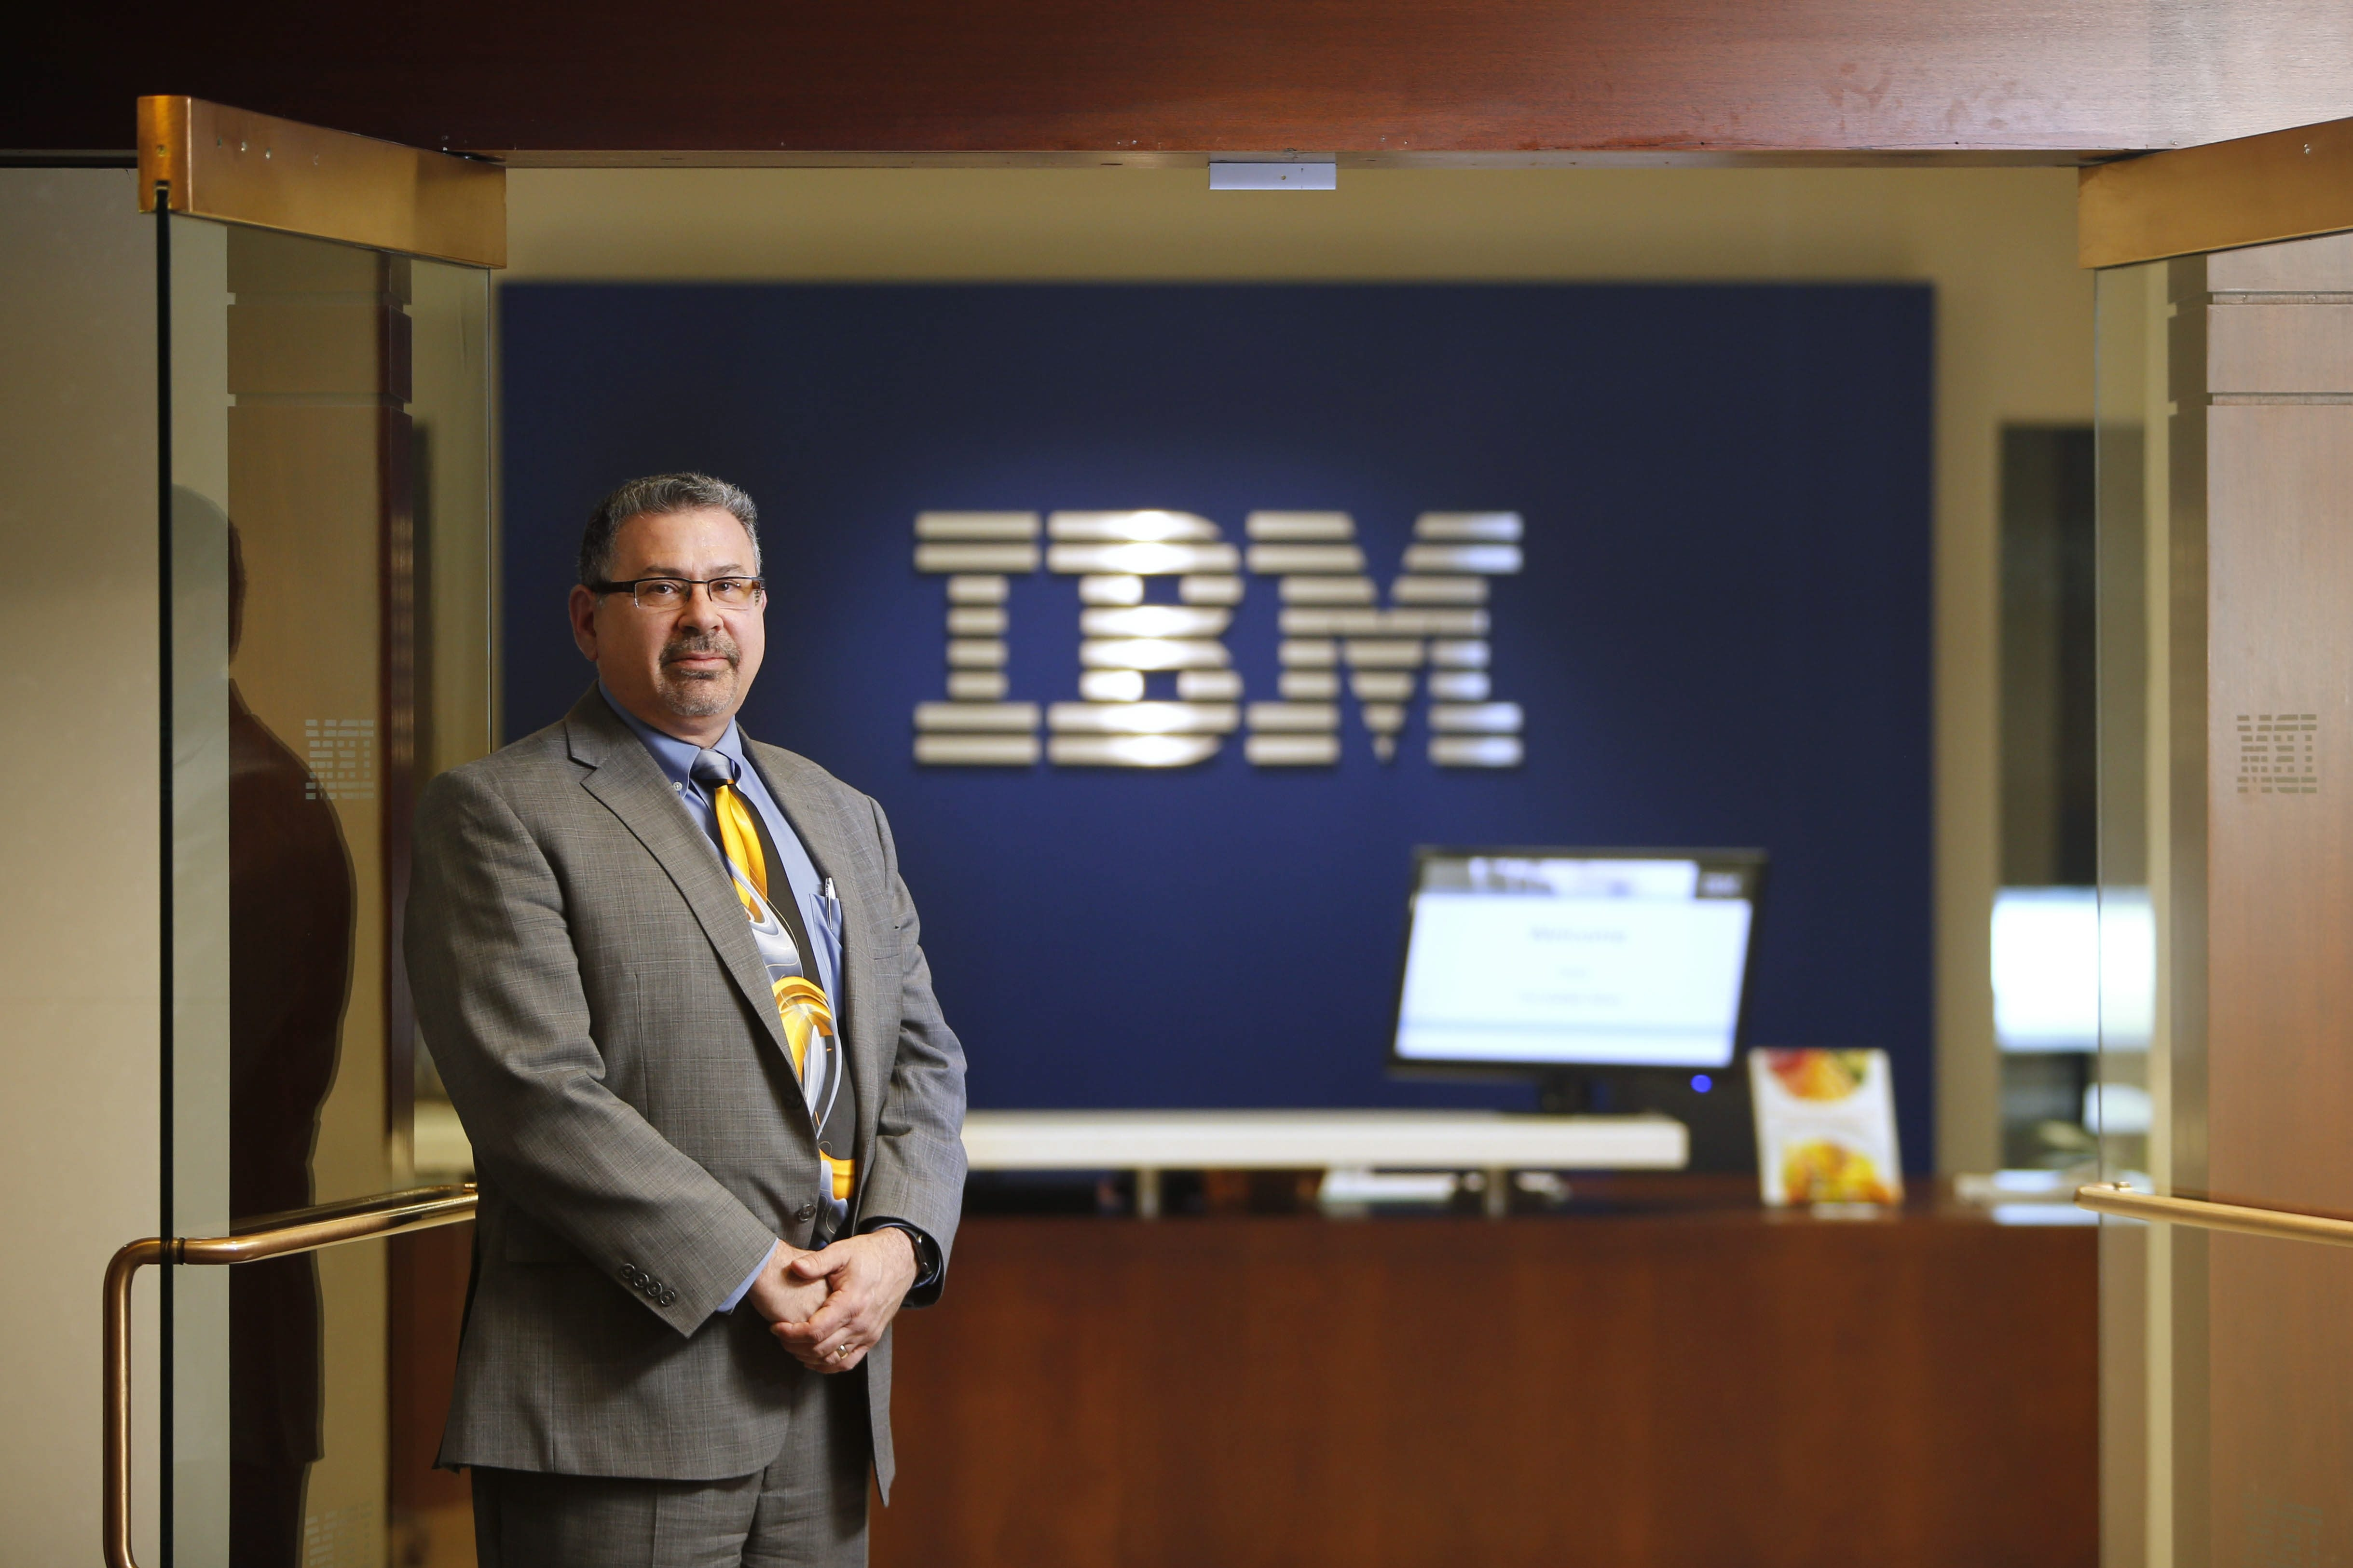 Jay Goodwyn, executive director of the IBM Buffalo Innovation Center, says the center will help companies analyze data to become smarter.  (Derek Gee/Buffalo News)